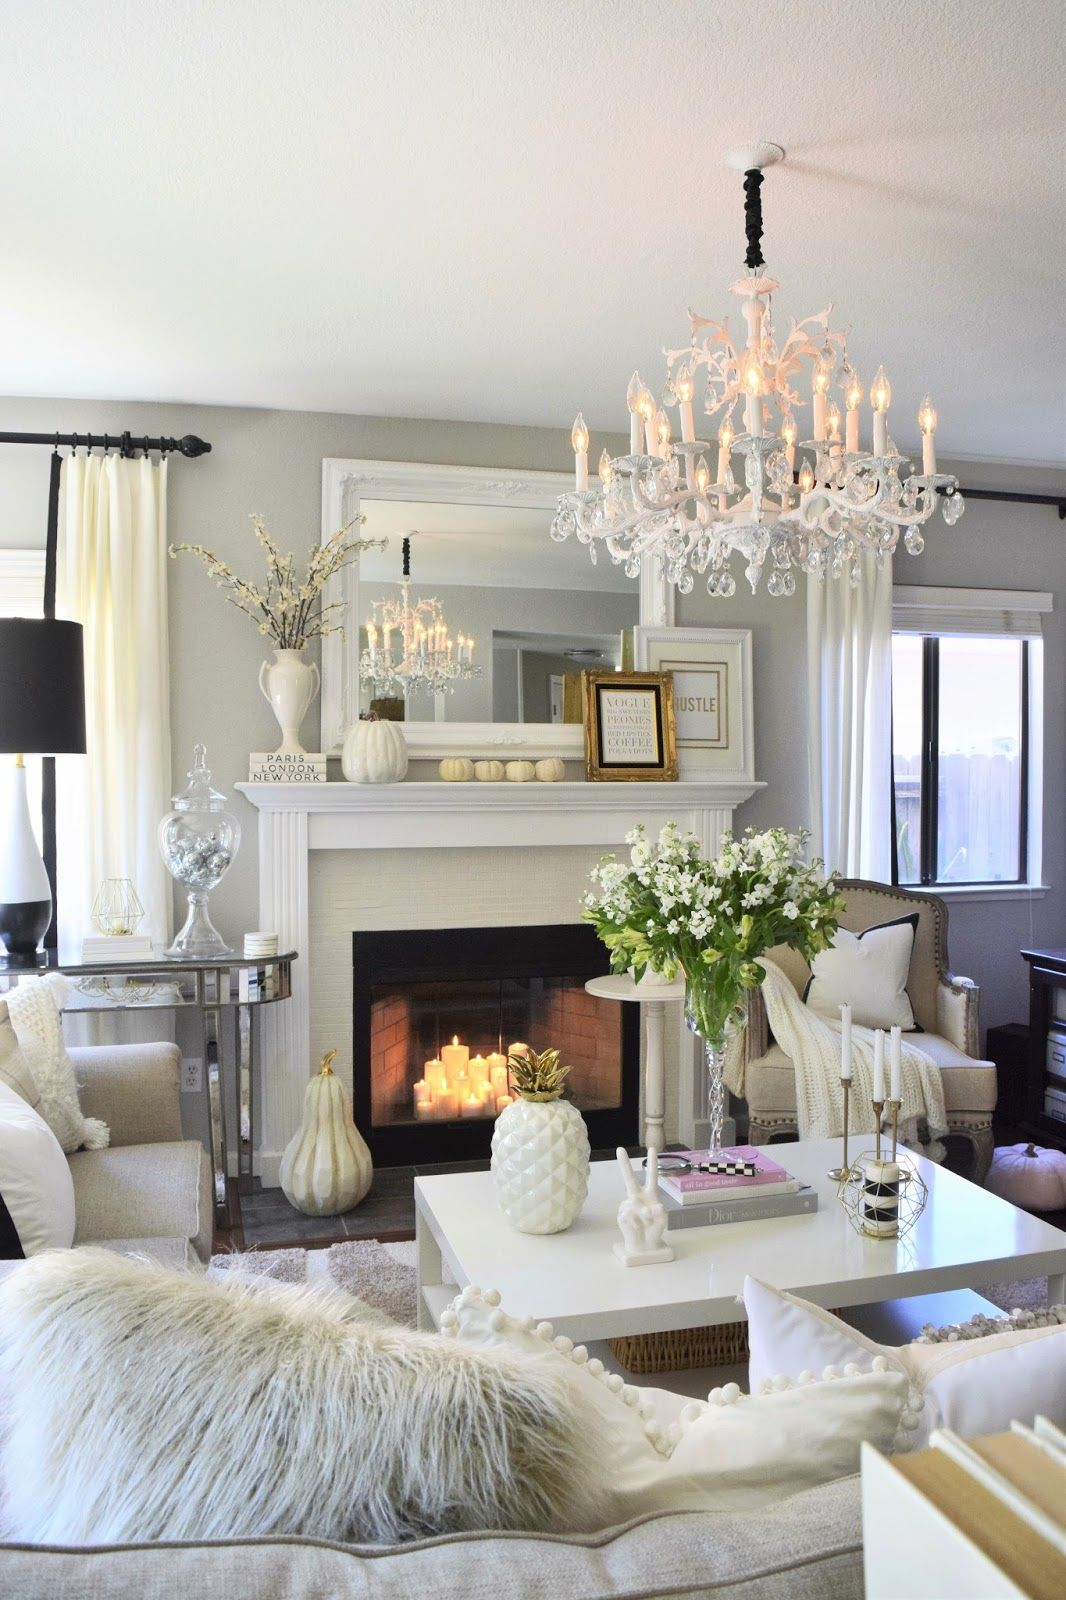 Clean and serene  neutral palette is timeless look that can be easily updated as the seasons or your tastes change make home yours also case for decorating with neutrals decoration themes living rh pinterest